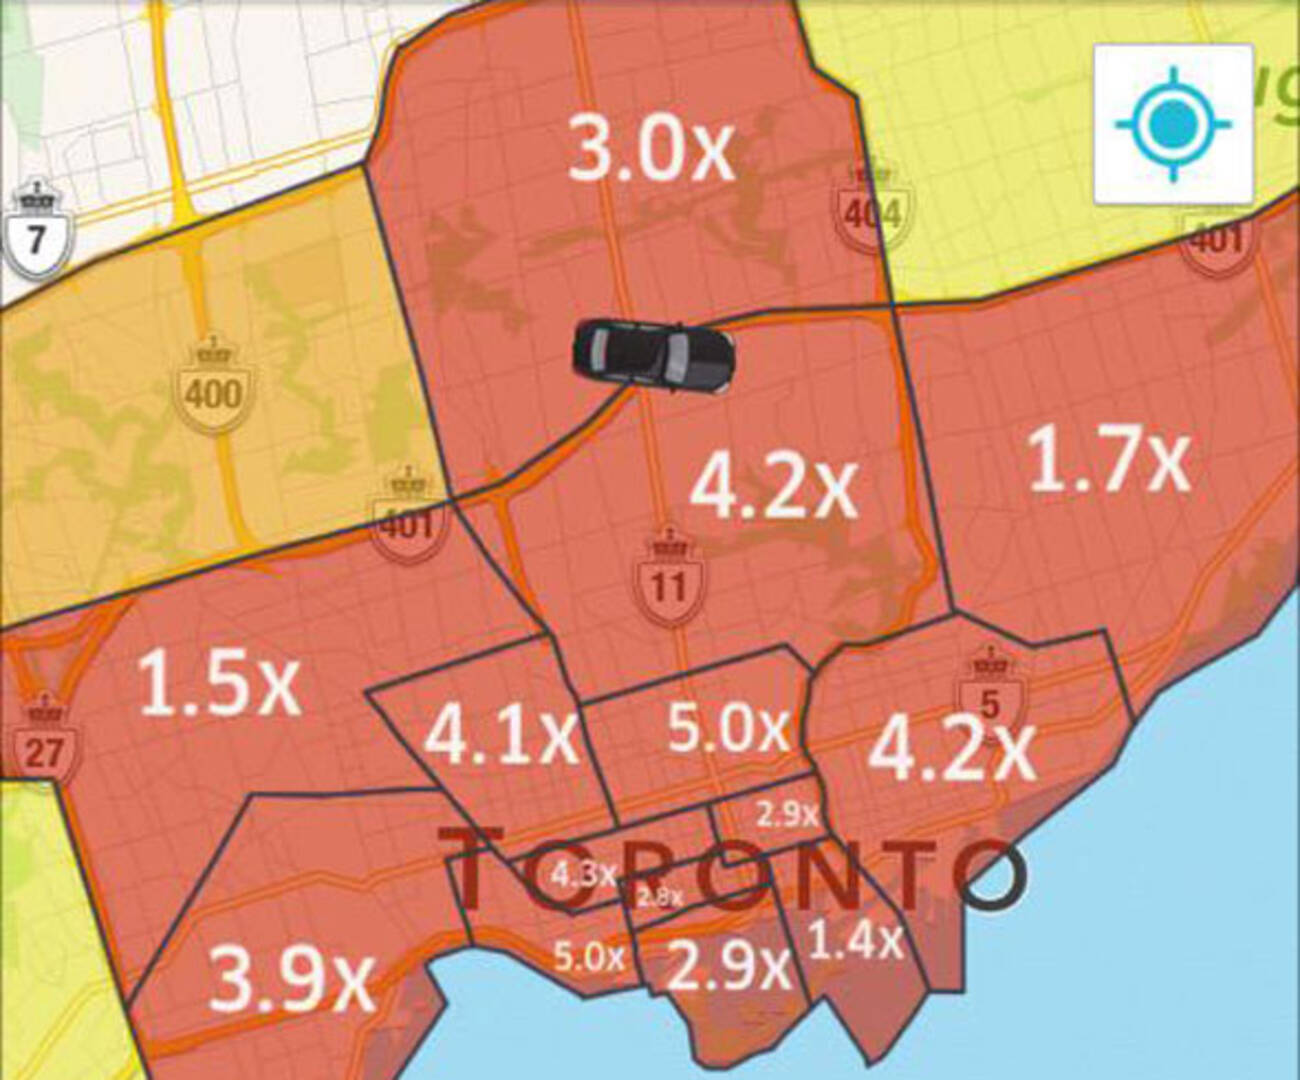 Uber Takes Heat For Jacking Prices During TTC Outage - Uber heat map us